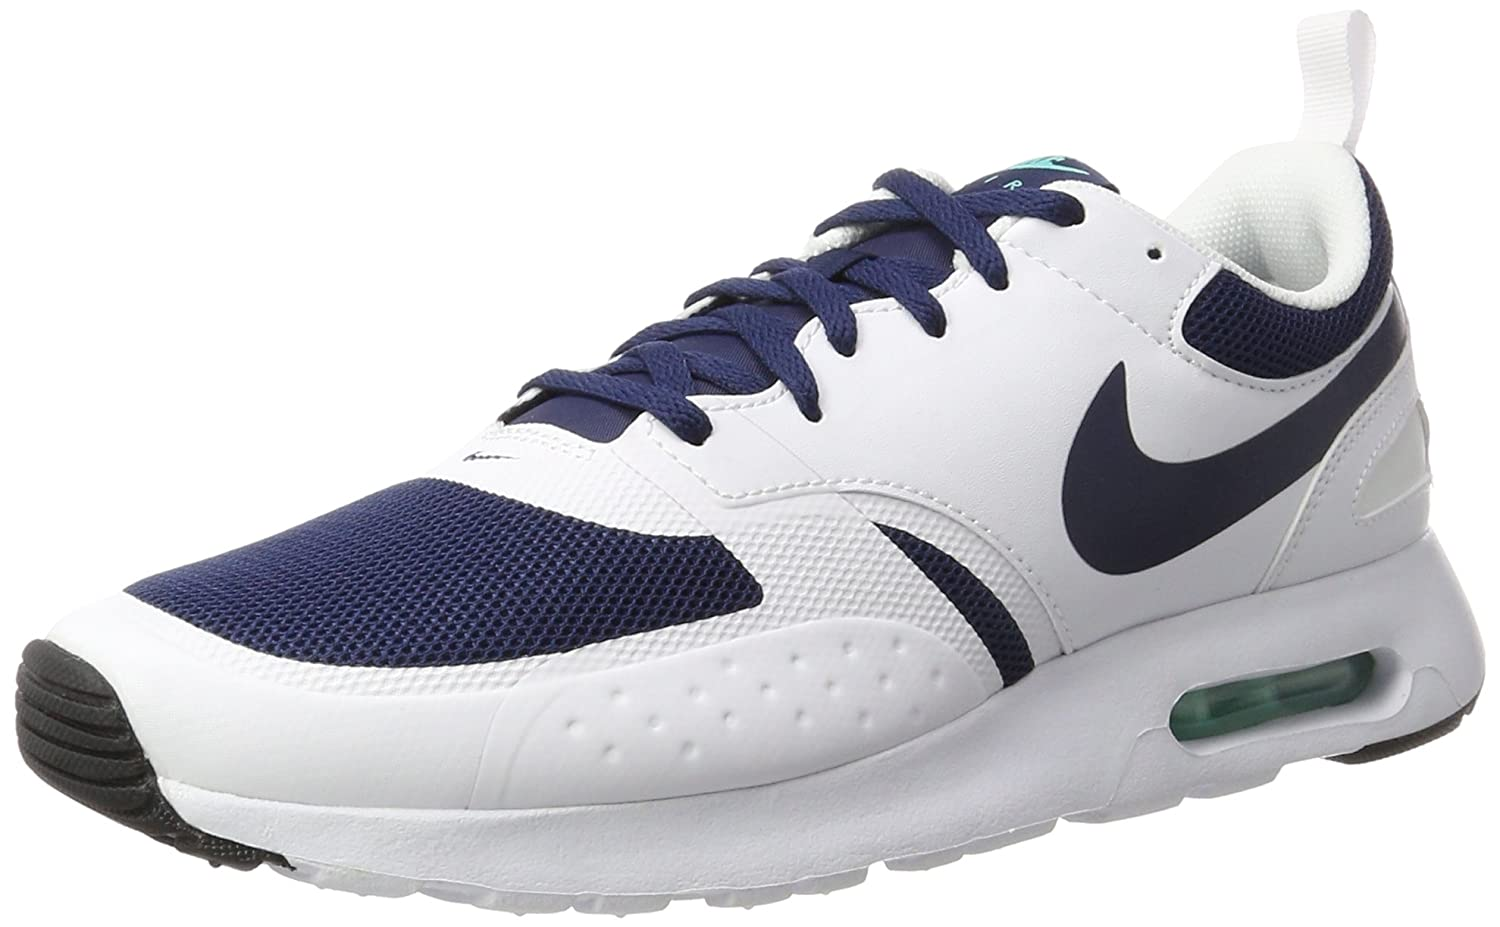 Bleu (Midnight Navy Midnight Navy-blanc-hyper) 44.5 EU Nike Air Max Vision, paniers Basses Homme